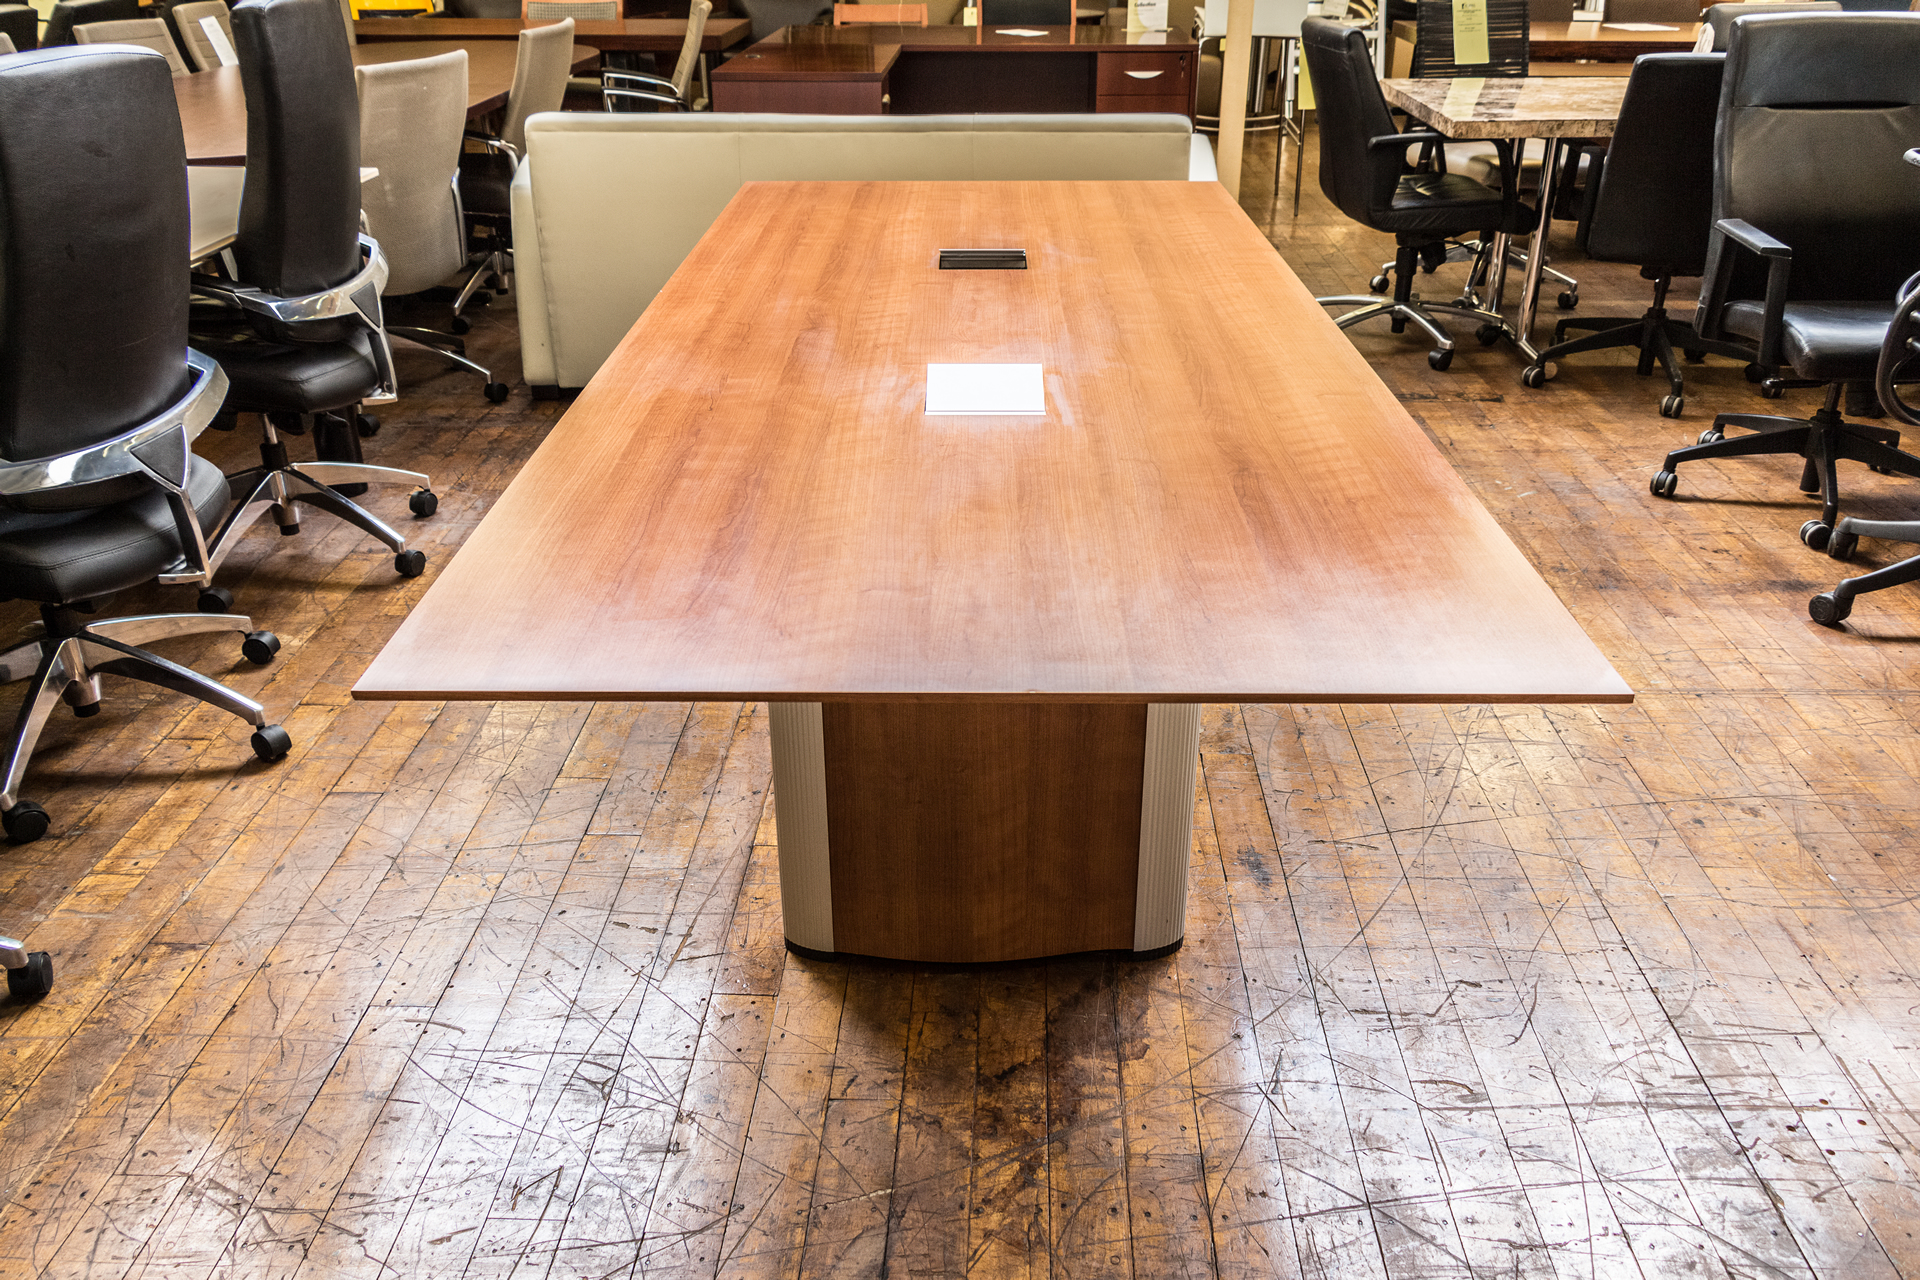 peartreeofficefurniture_peartreeofficefurniture_peartreeofficefurniture_nienkamper-vox-8-x-3-5-cherry-laminate-tapered-edge-conference-table.jpg